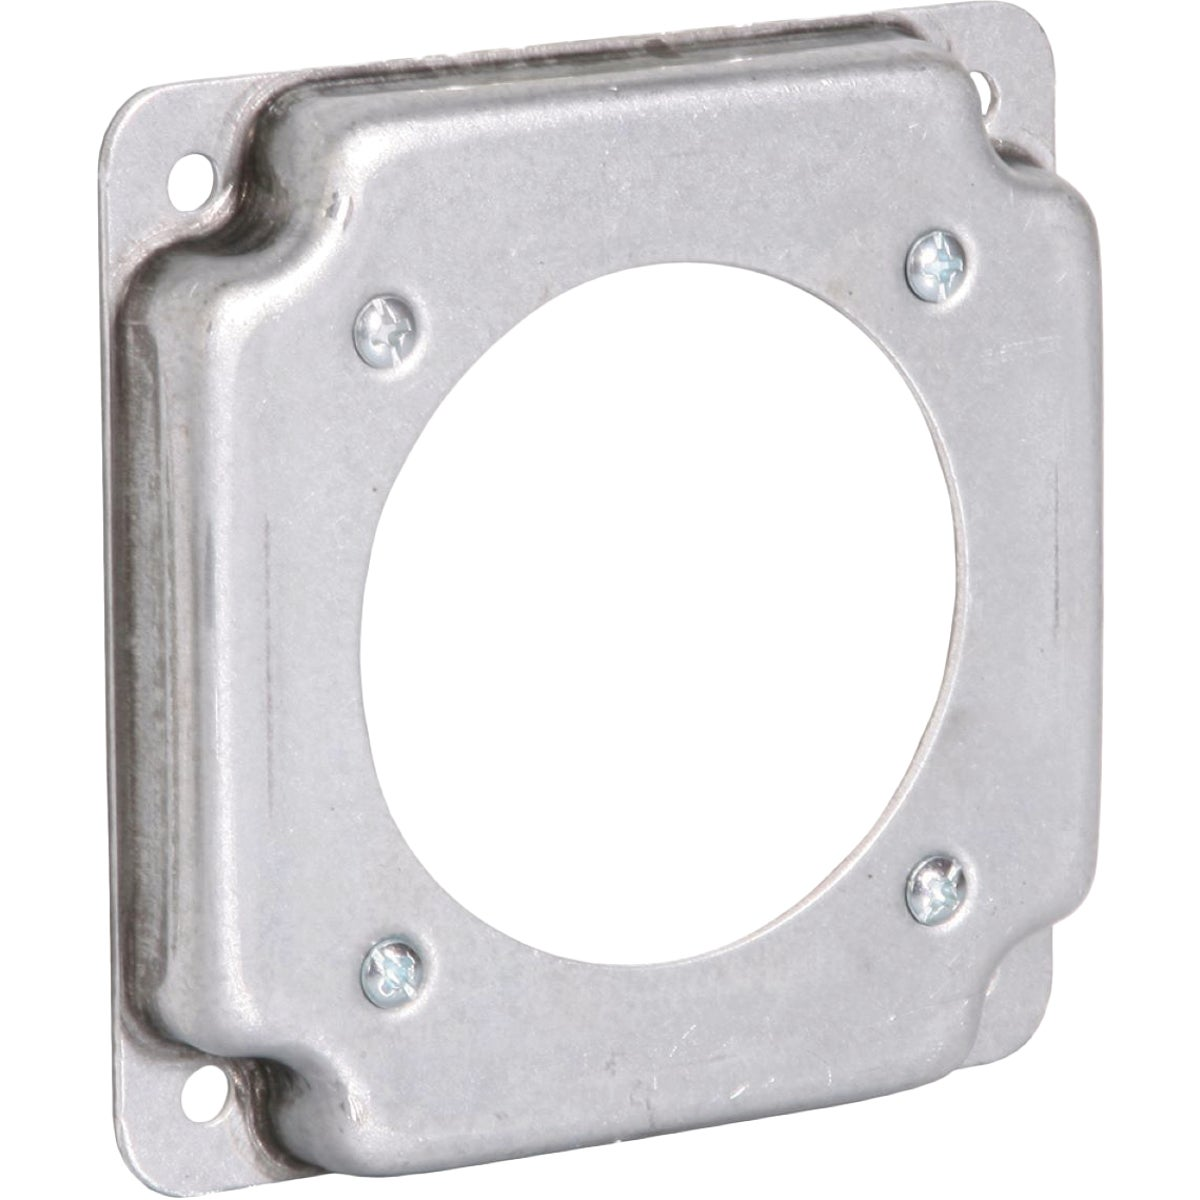 "4"" SQ 30A/60A BOX COVER - RS1430 by Thomas & Betts"